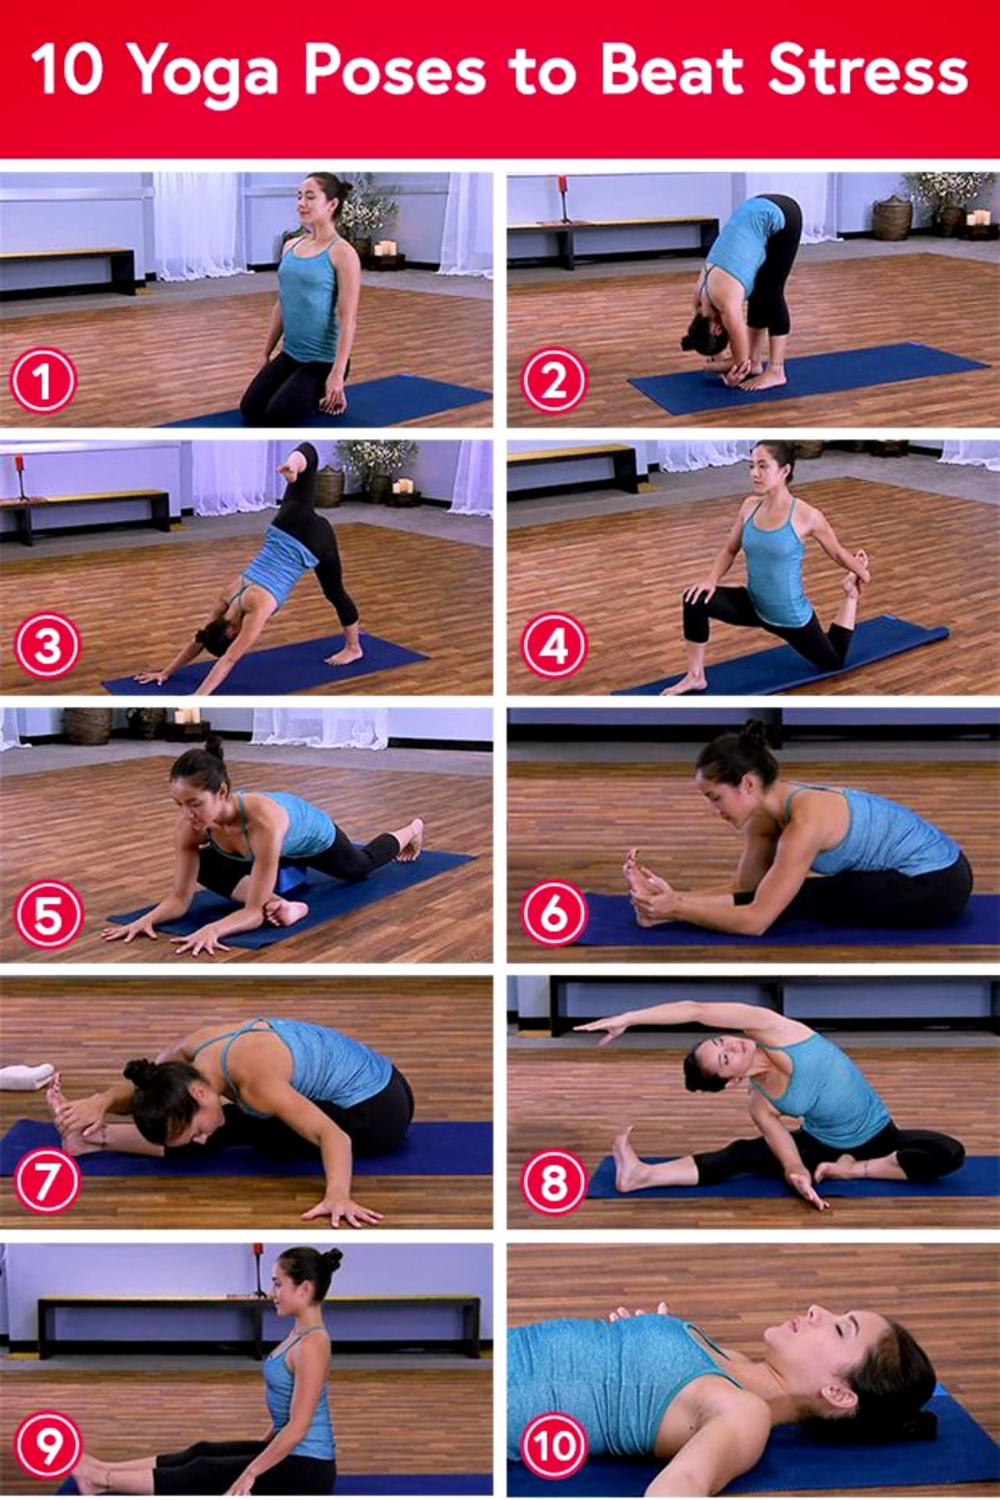 Easy Yoga Poses For Stressed Out Moms Yoga Poses For Beginners Yoga Poses For Beginners Easy Yoga Poses Stress Yoga